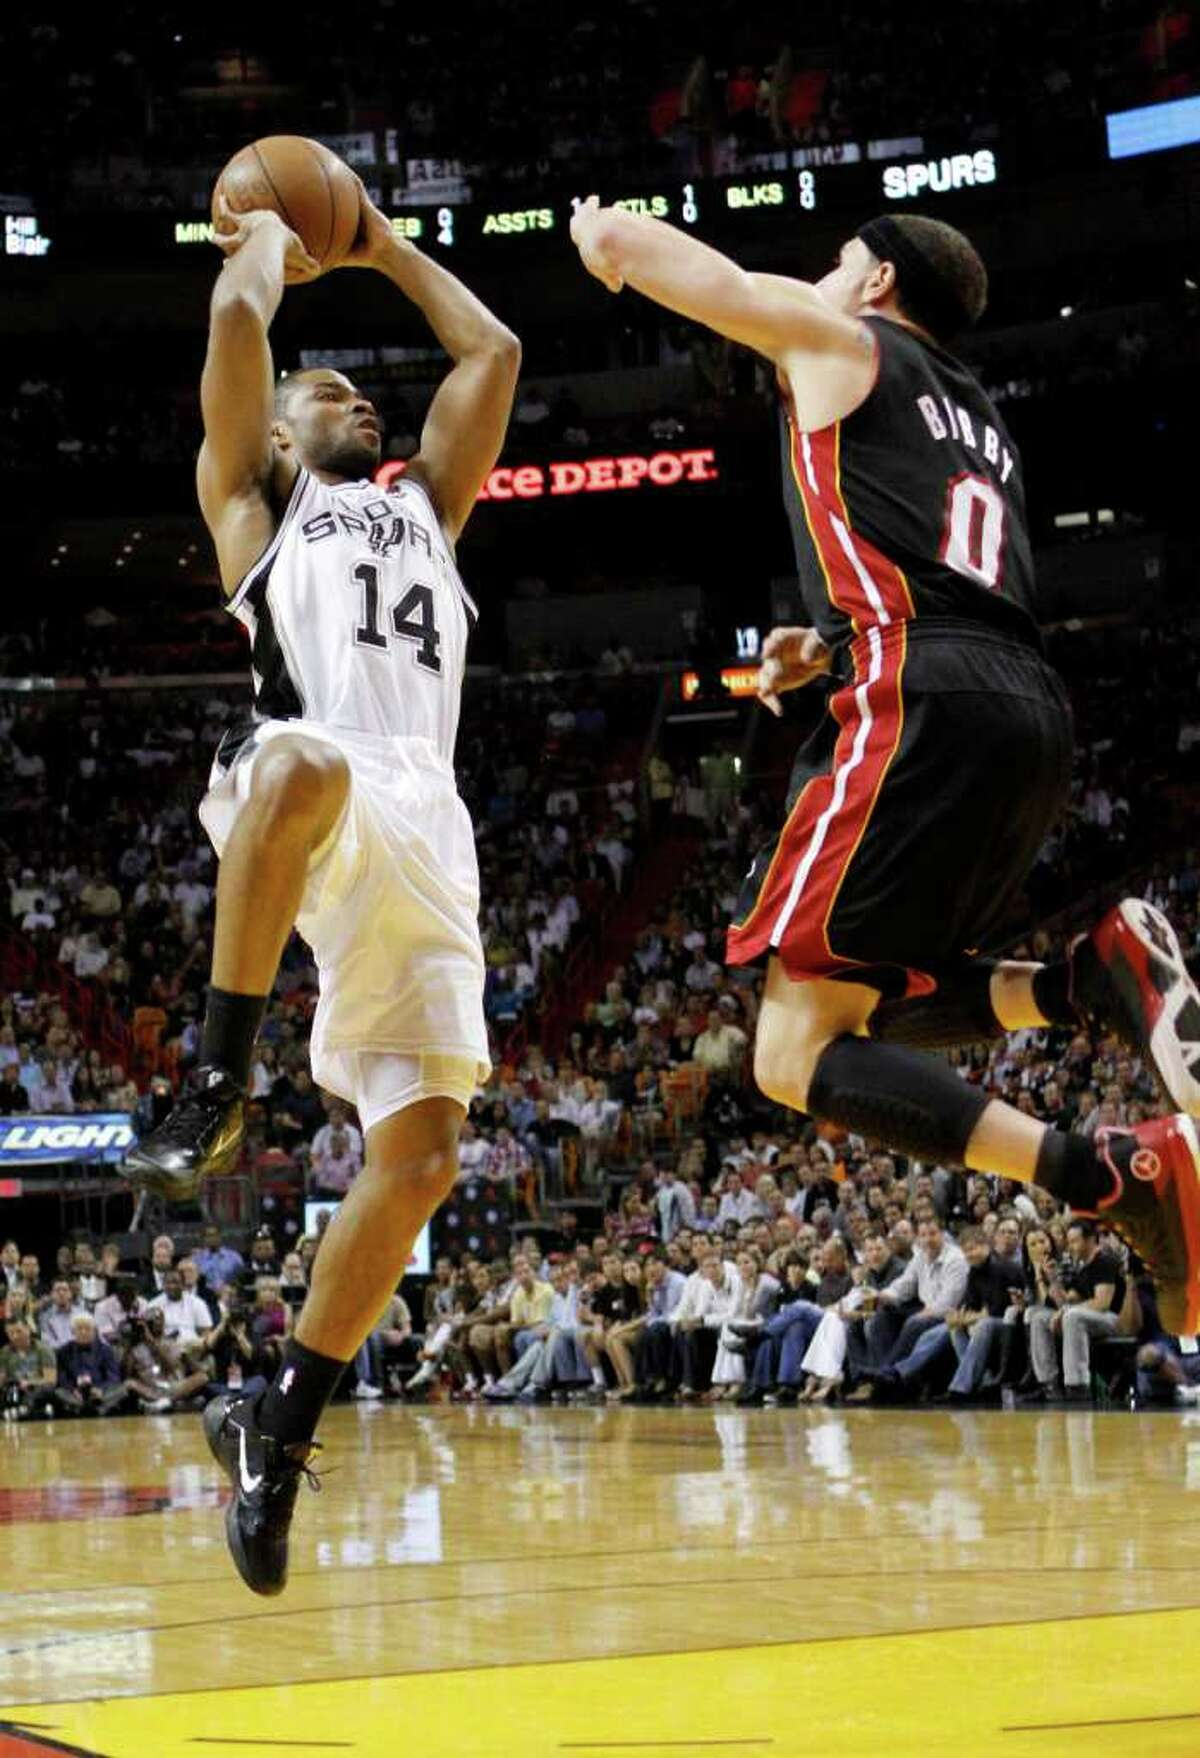 San Antonio Spurs' Gary Neal (14) prepares to shoot over Miami Heat's Mike Bibby (0) in the second quarter of an NBA basketball game in Miami, Monday, March 14, 2011. The Heat won 110-80.